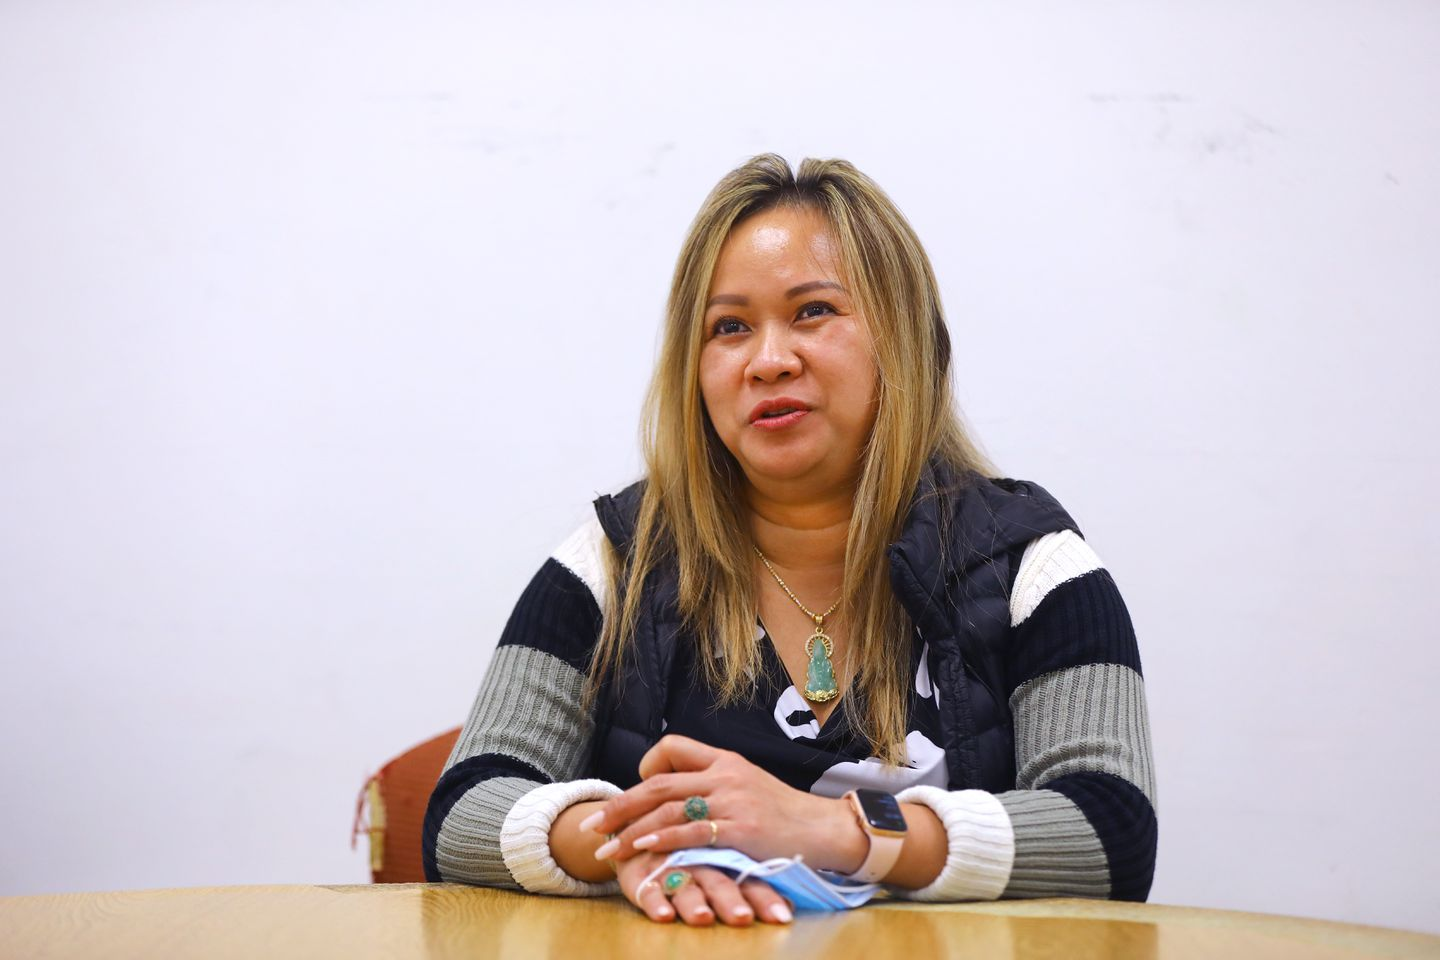 Nail salon worker Amy Nguyen has had her work hours slashed because of effects of the coronavirus pandemic. A single mother of two who emigrated to Boston from Vietnam 18 years ago, she is pictured in the offices of VietAID, a nonprofit serving Vietnamese immigrants in Fields Corner.